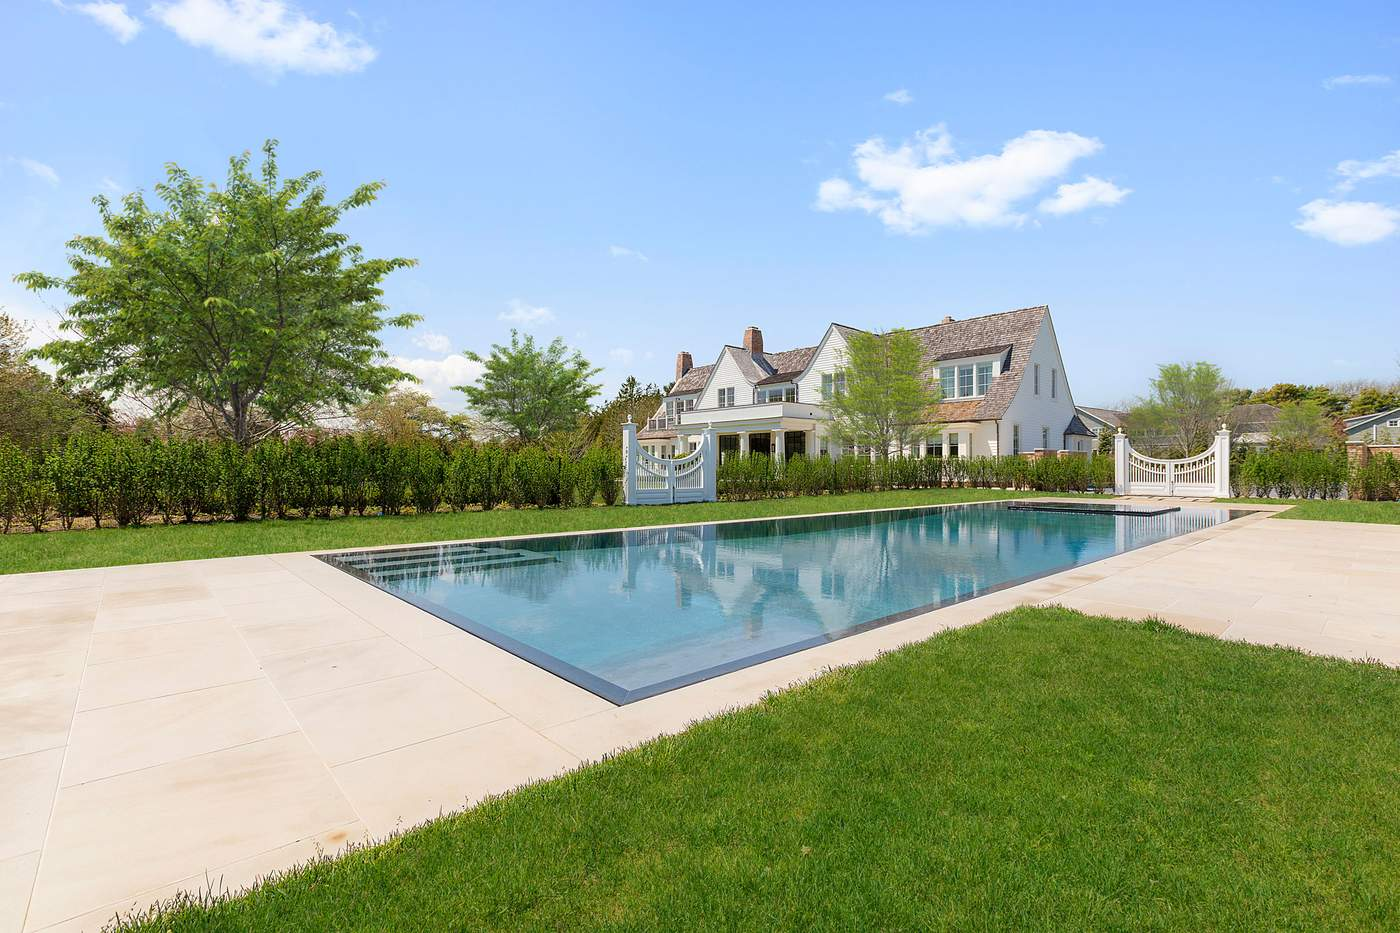 490 Hedges Lane, Sagaponack$19.75 millionWithin minutes of several eateries, this 2016 manion has seven bedrooms and eight full bathrooms, plus five additional half bathrooms. It's set on 2.3 acres, and was designed by James Michael Howard and won a Stanford White Award in 2017. It has an expansive great room with wooden beams, a state-of-the-art kitchen with a La Cornue range, a master suite with a private balcony, a fitness center with a massage room and a recreation room with a separate kitchen. The landscaped ground feature a pool, pool house, and sunken tennis court.